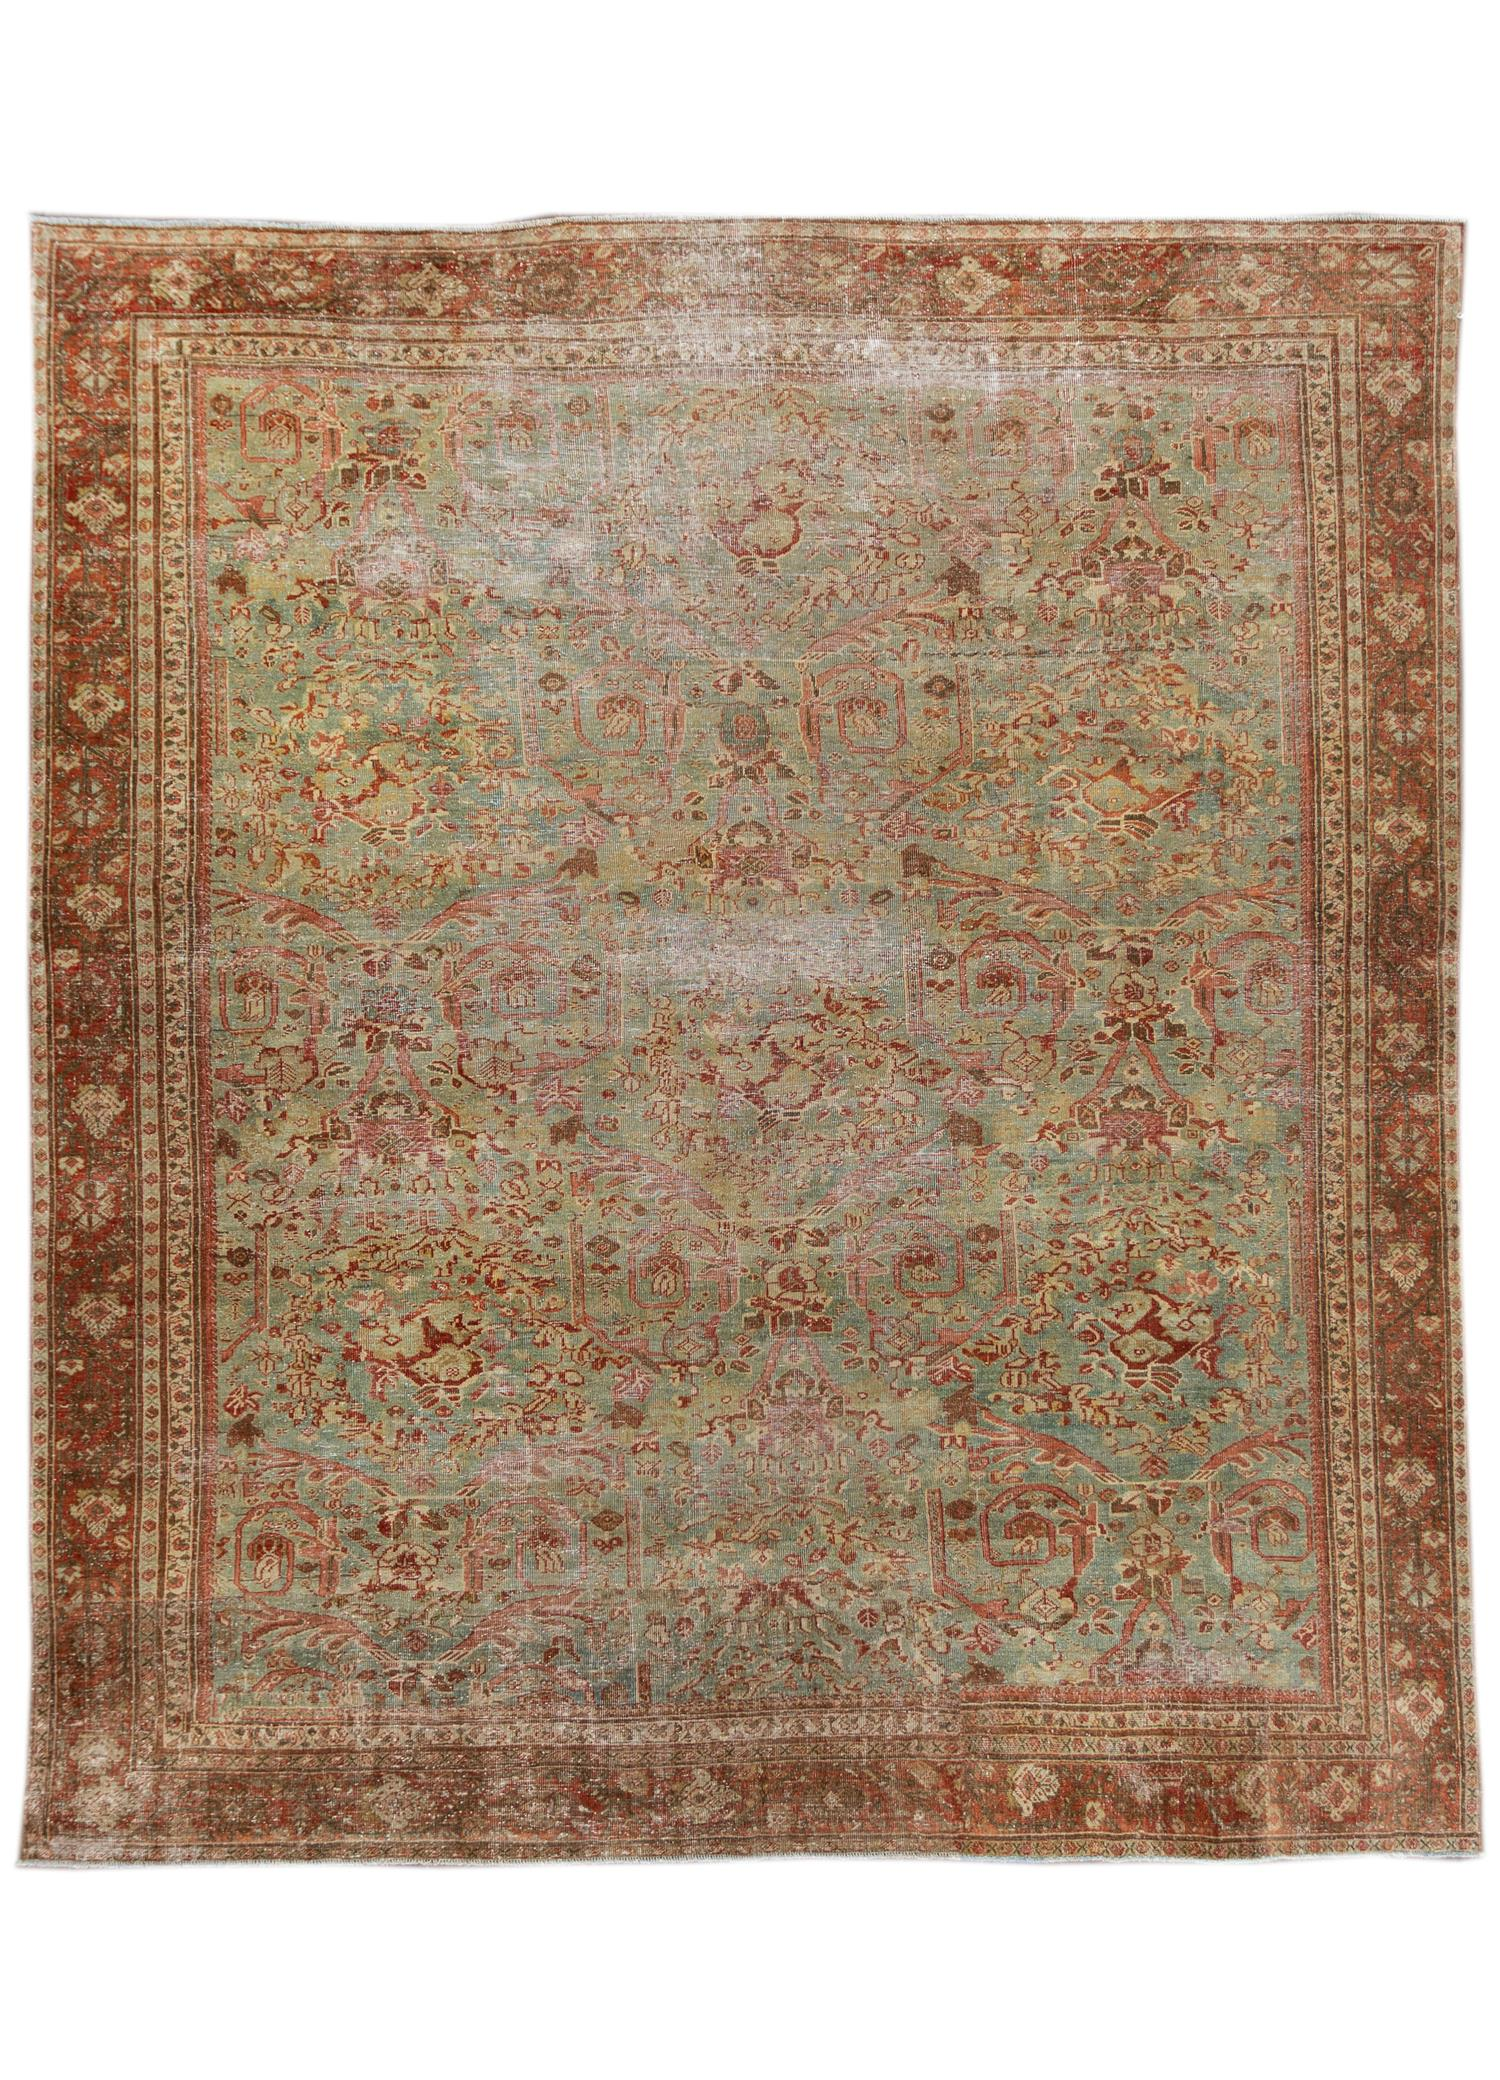 Antique Blue & Rust Malayer Wool Area Rug, 10' x 11'